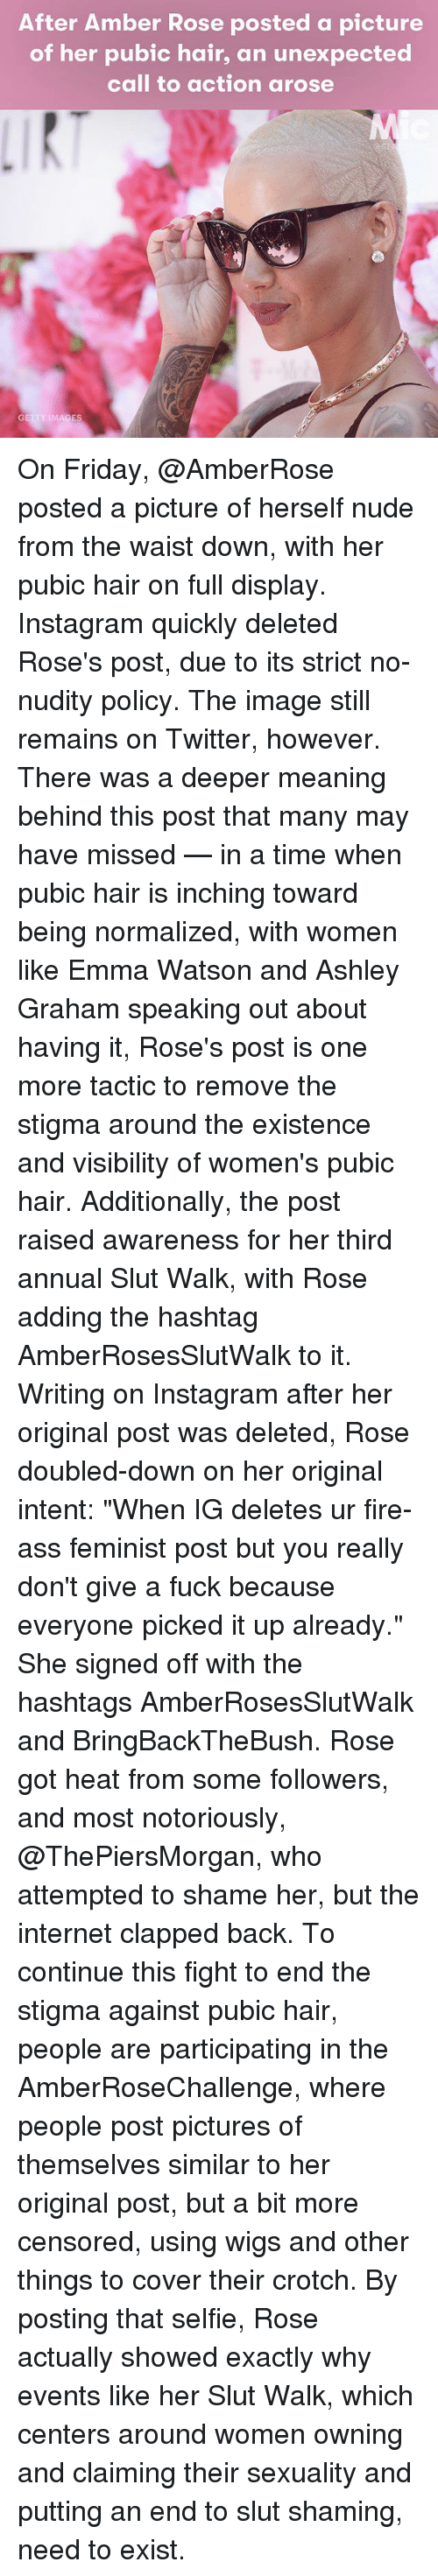 """Amber Rose, Ass, and Emma Watson: After Amber Rose posted a picture  of her pubic hair, an unexpected  call to action arose  IMAGES On Friday, @AmberRose posted a picture of herself nude from the waist down, with her pubic hair on full display. Instagram quickly deleted Rose's post, due to its strict no-nudity policy. The image still remains on Twitter, however. There was a deeper meaning behind this post that many may have missed — in a time when pubic hair is inching toward being normalized, with women like Emma Watson and Ashley Graham speaking out about having it, Rose's post is one more tactic to remove the stigma around the existence and visibility of women's pubic hair. Additionally, the post raised awareness for her third annual Slut Walk, with Rose adding the hashtag AmberRosesSlutWalk to it. Writing on Instagram after her original post was deleted, Rose doubled-down on her original intent: """"When IG deletes ur fire-ass feminist post but you really don't give a fuck because everyone picked it up already."""" She signed off with the hashtags AmberRosesSlutWalk and BringBackTheBush. Rose got heat from some followers, and most notoriously, @ThePiersMorgan, who attempted to shame her, but the internet clapped back. To continue this fight to end the stigma against pubic hair, people are participating in the AmberRoseChallenge, where people post pictures of themselves similar to her original post, but a bit more censored, using wigs and other things to cover their crotch. By posting that selfie, Rose actually showed exactly why events like her Slut Walk, which centers around women owning and claiming their sexuality and putting an end to slut shaming, need to exist."""